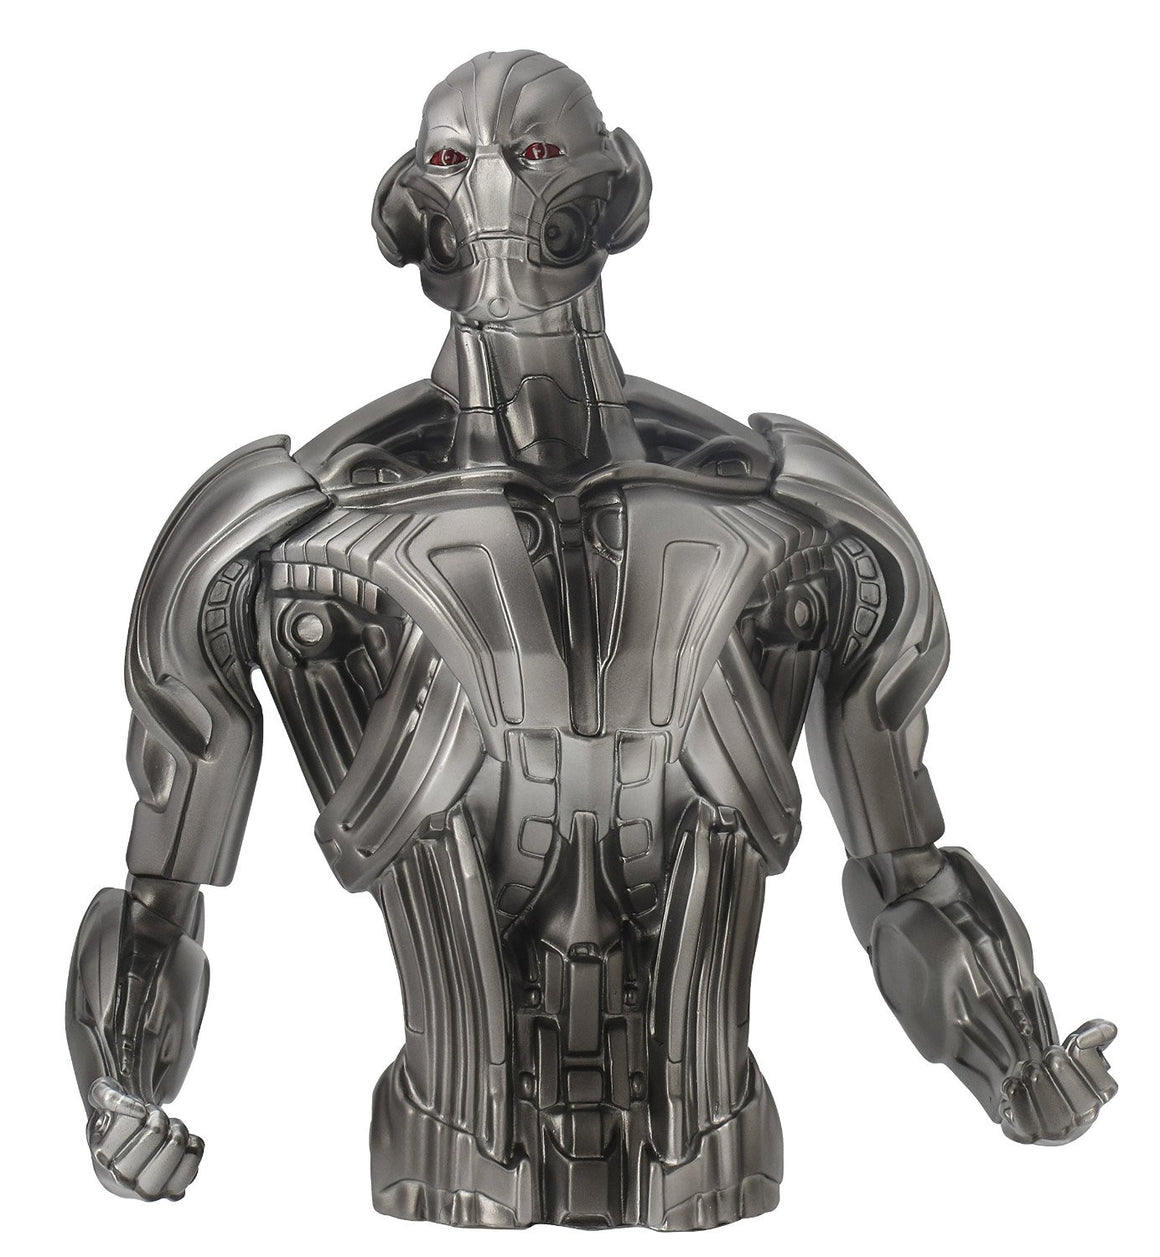 Ultron- Avengers Age of Ultron Bust Bank-Monogram International- www.superherotoystore.com-Bust Bank